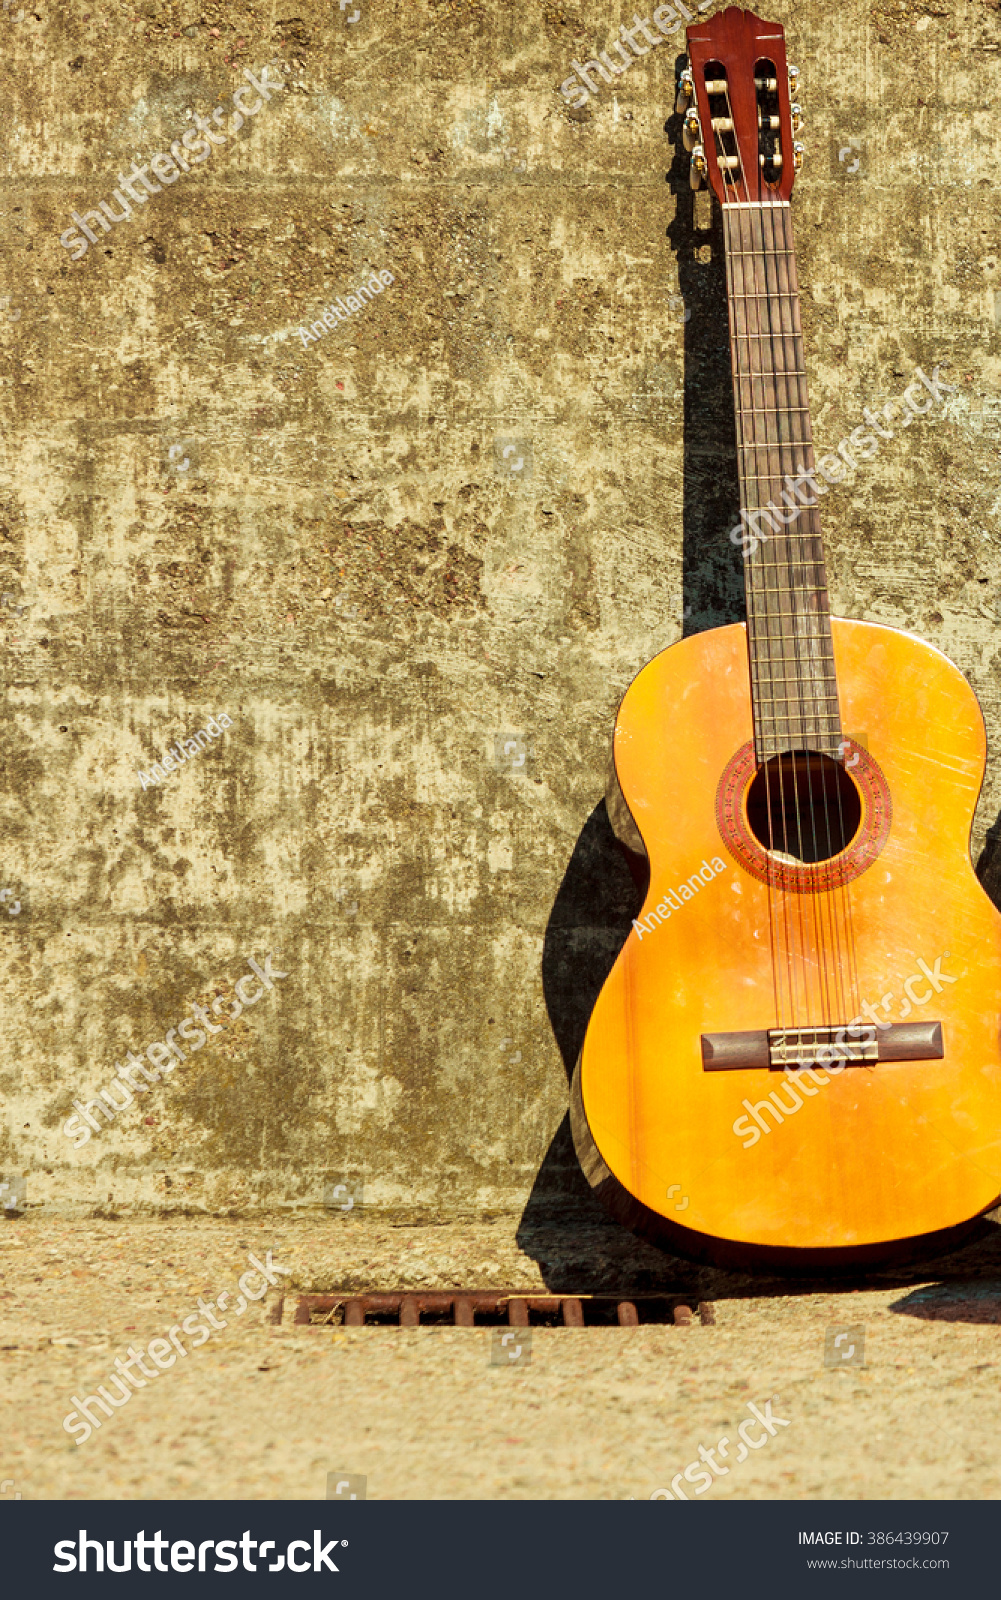 Music Concept Acoustic Guitar Outdoor On Stock Photo (Edit